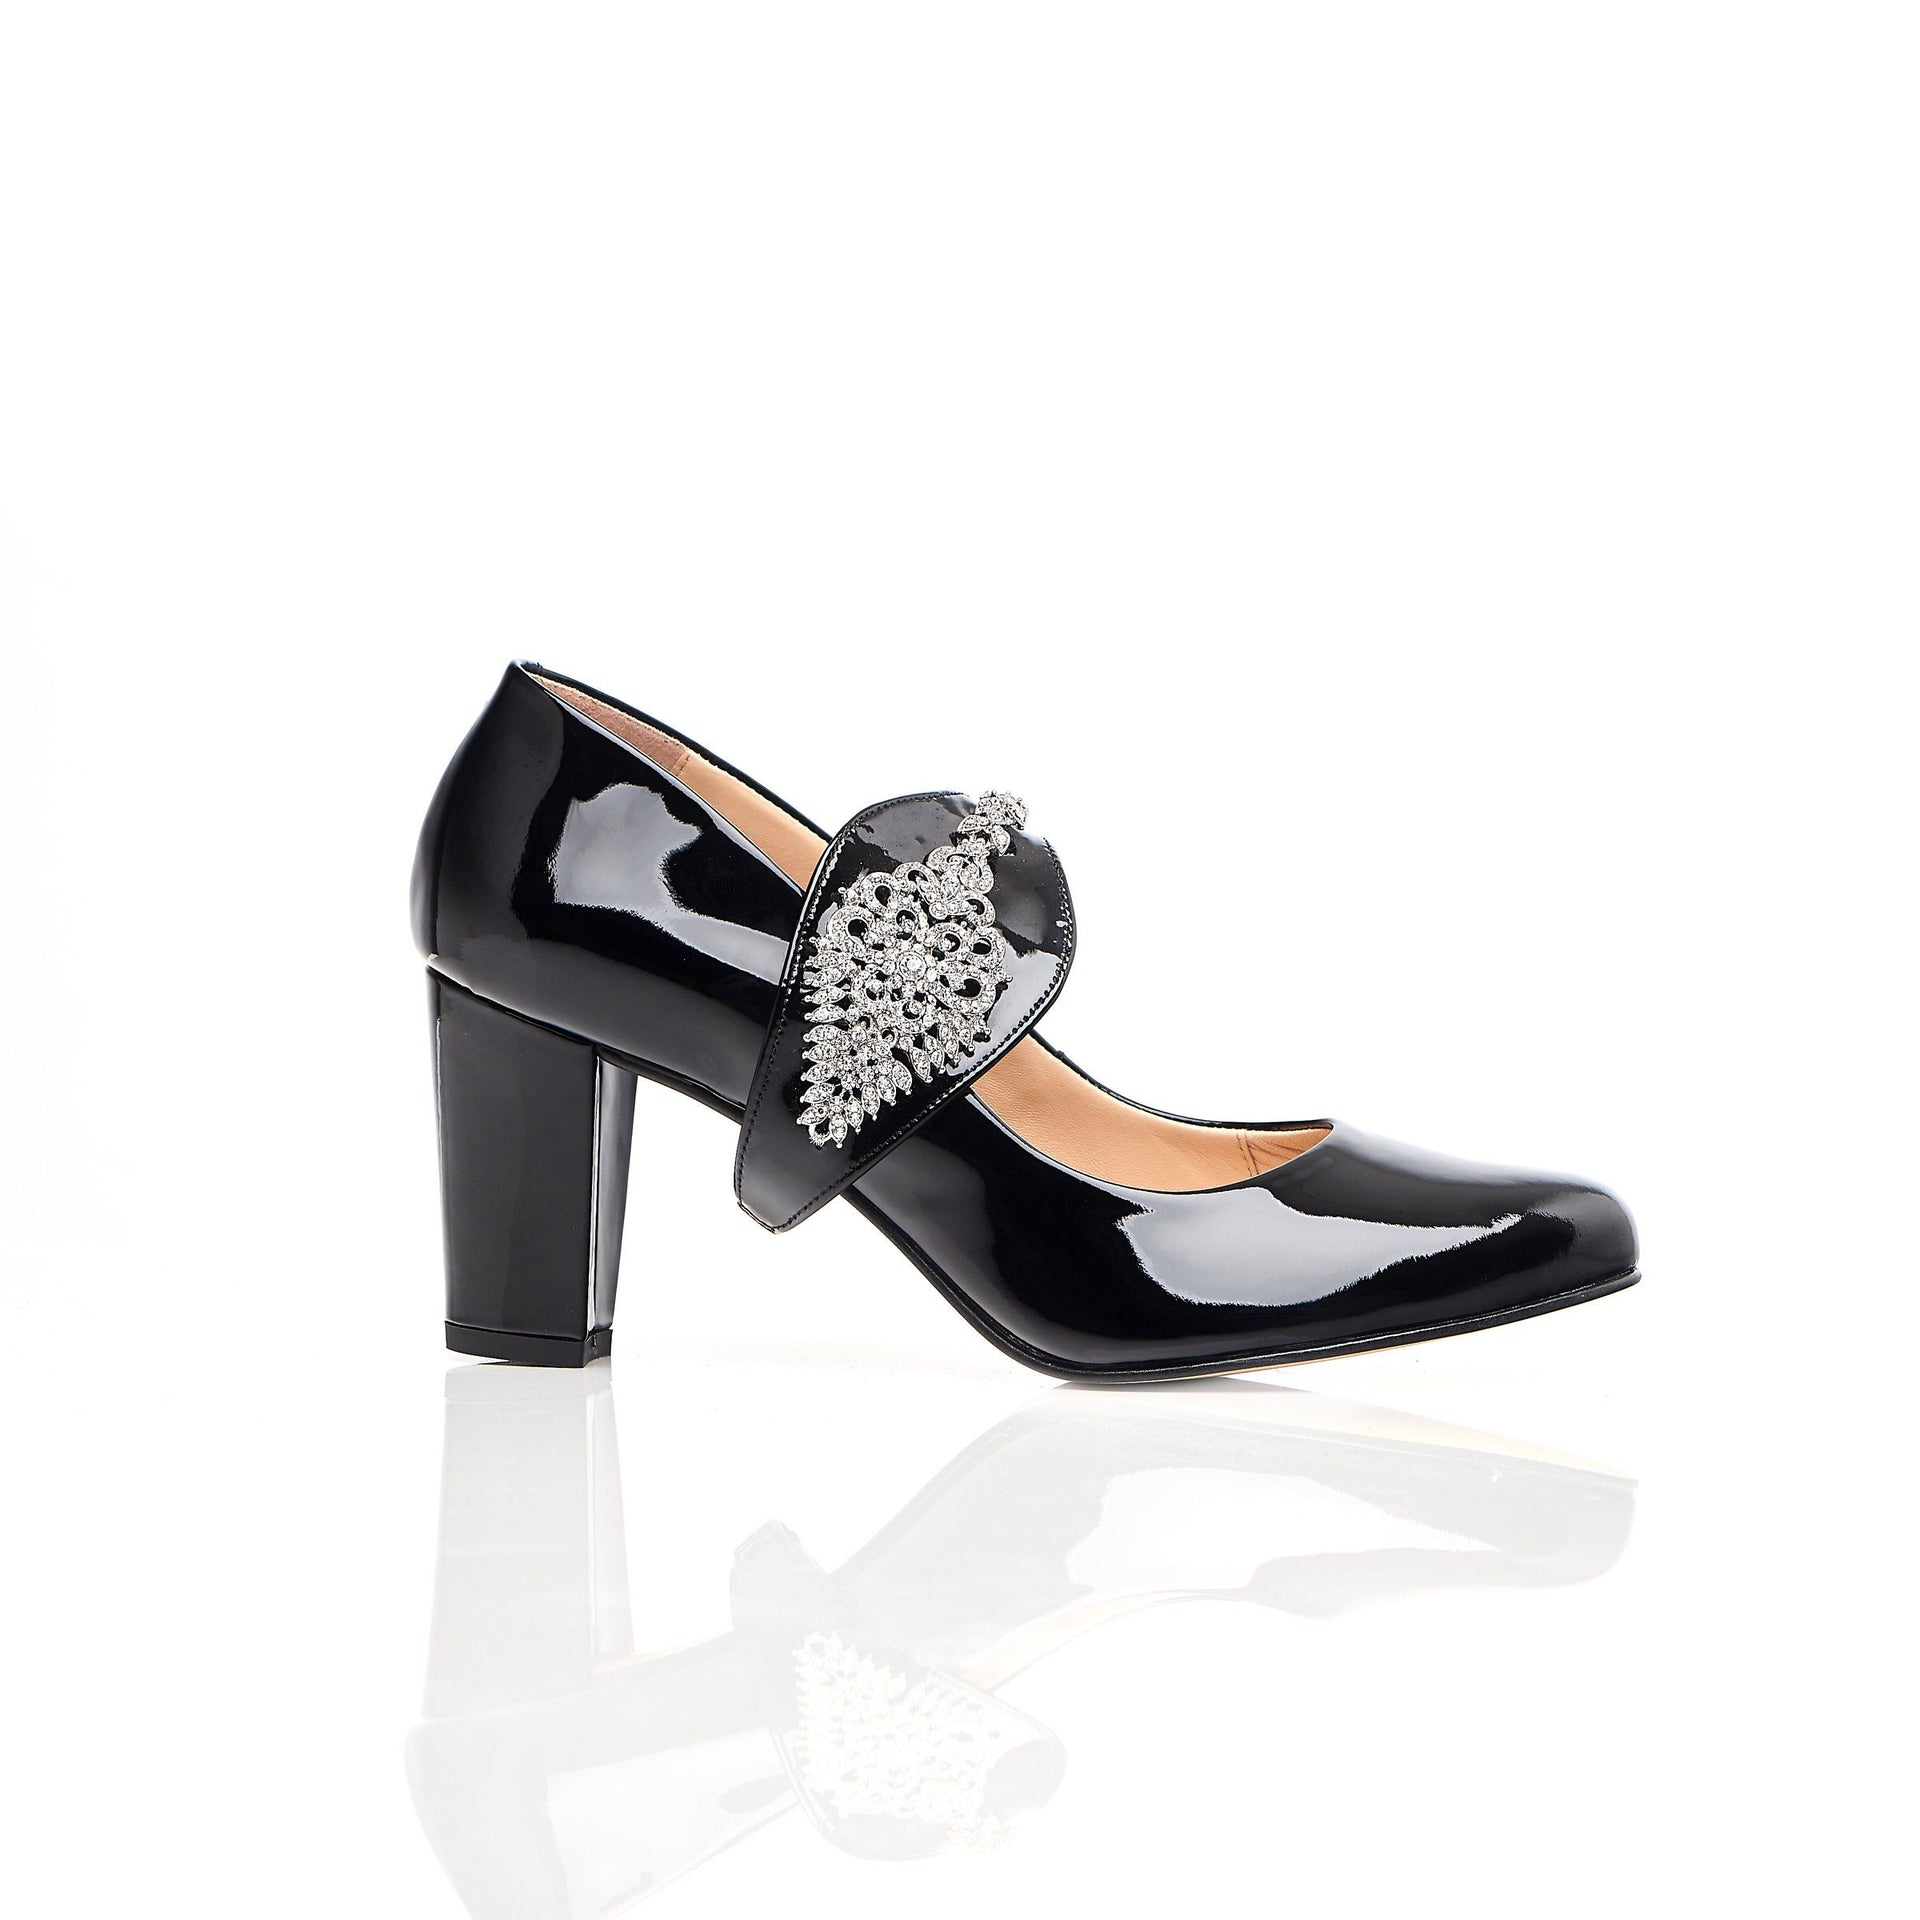 Dream Then Do in Silver Gems - Block Heels - Black Leather - Shoes by Shaherazad